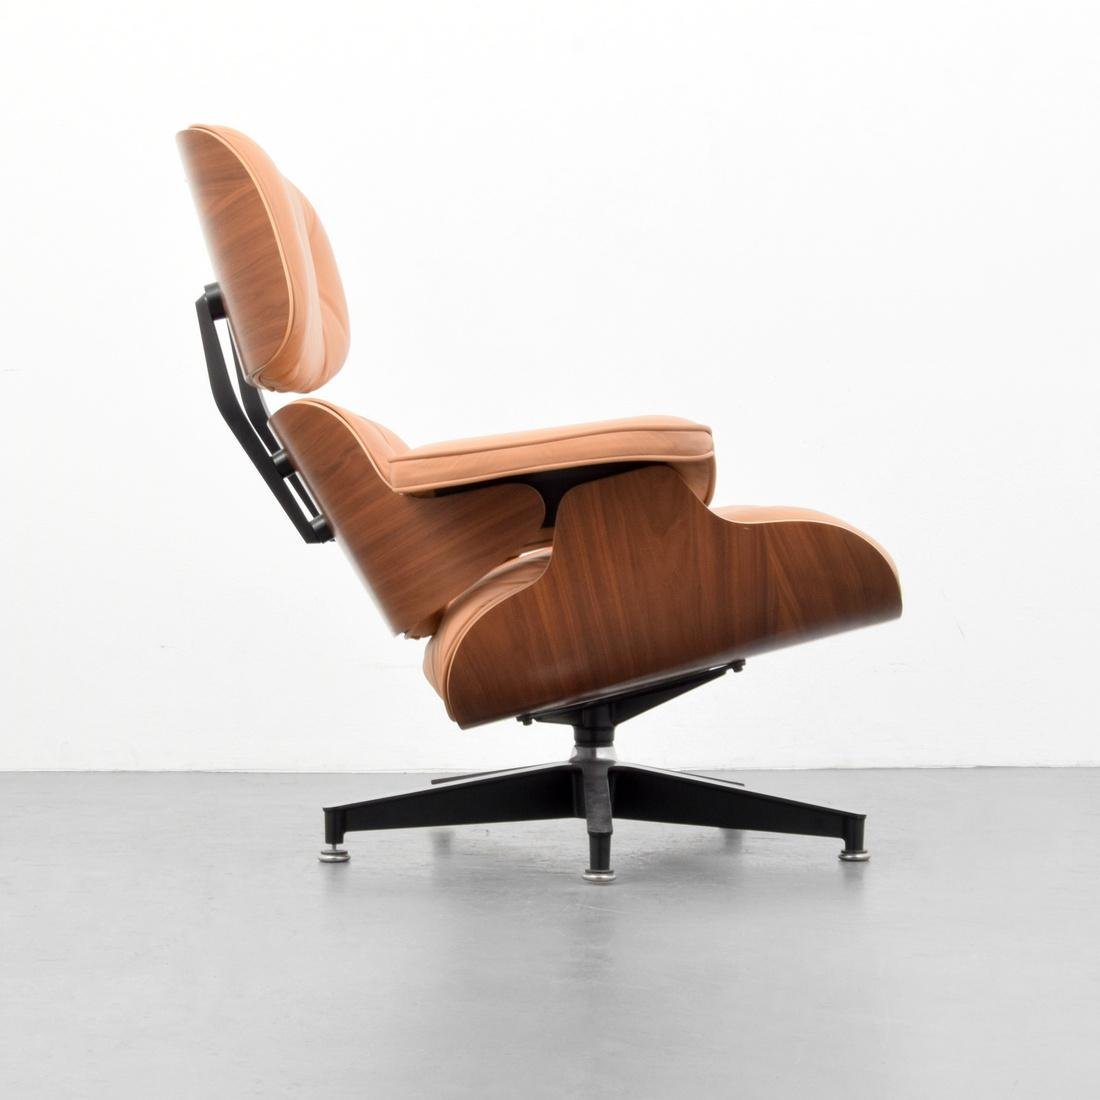 Charles & Ray Eames Lounge Chair - 3